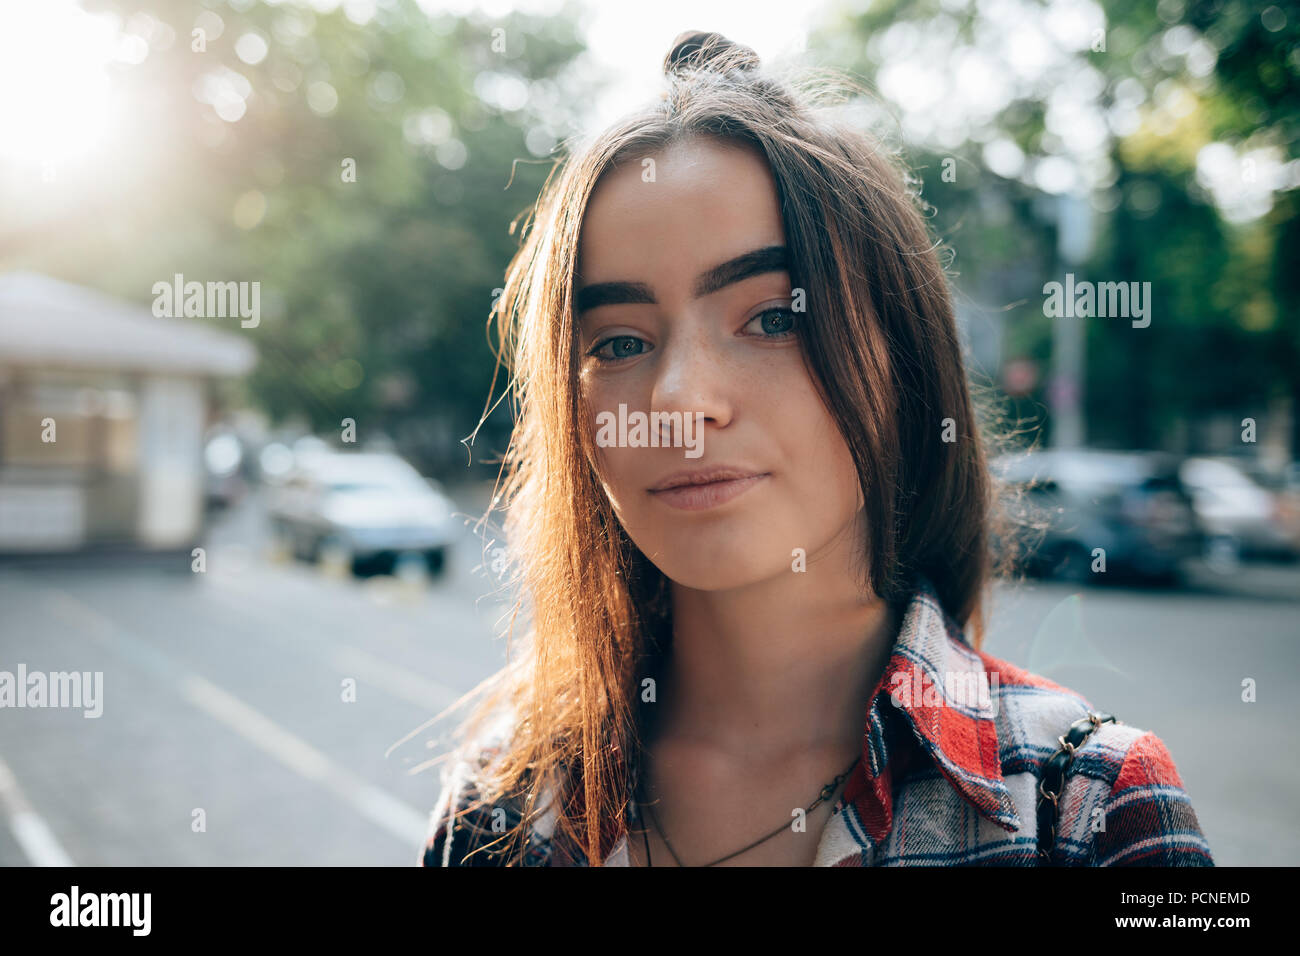 Close Up Portrait Of Happy Young Woman In City With Green